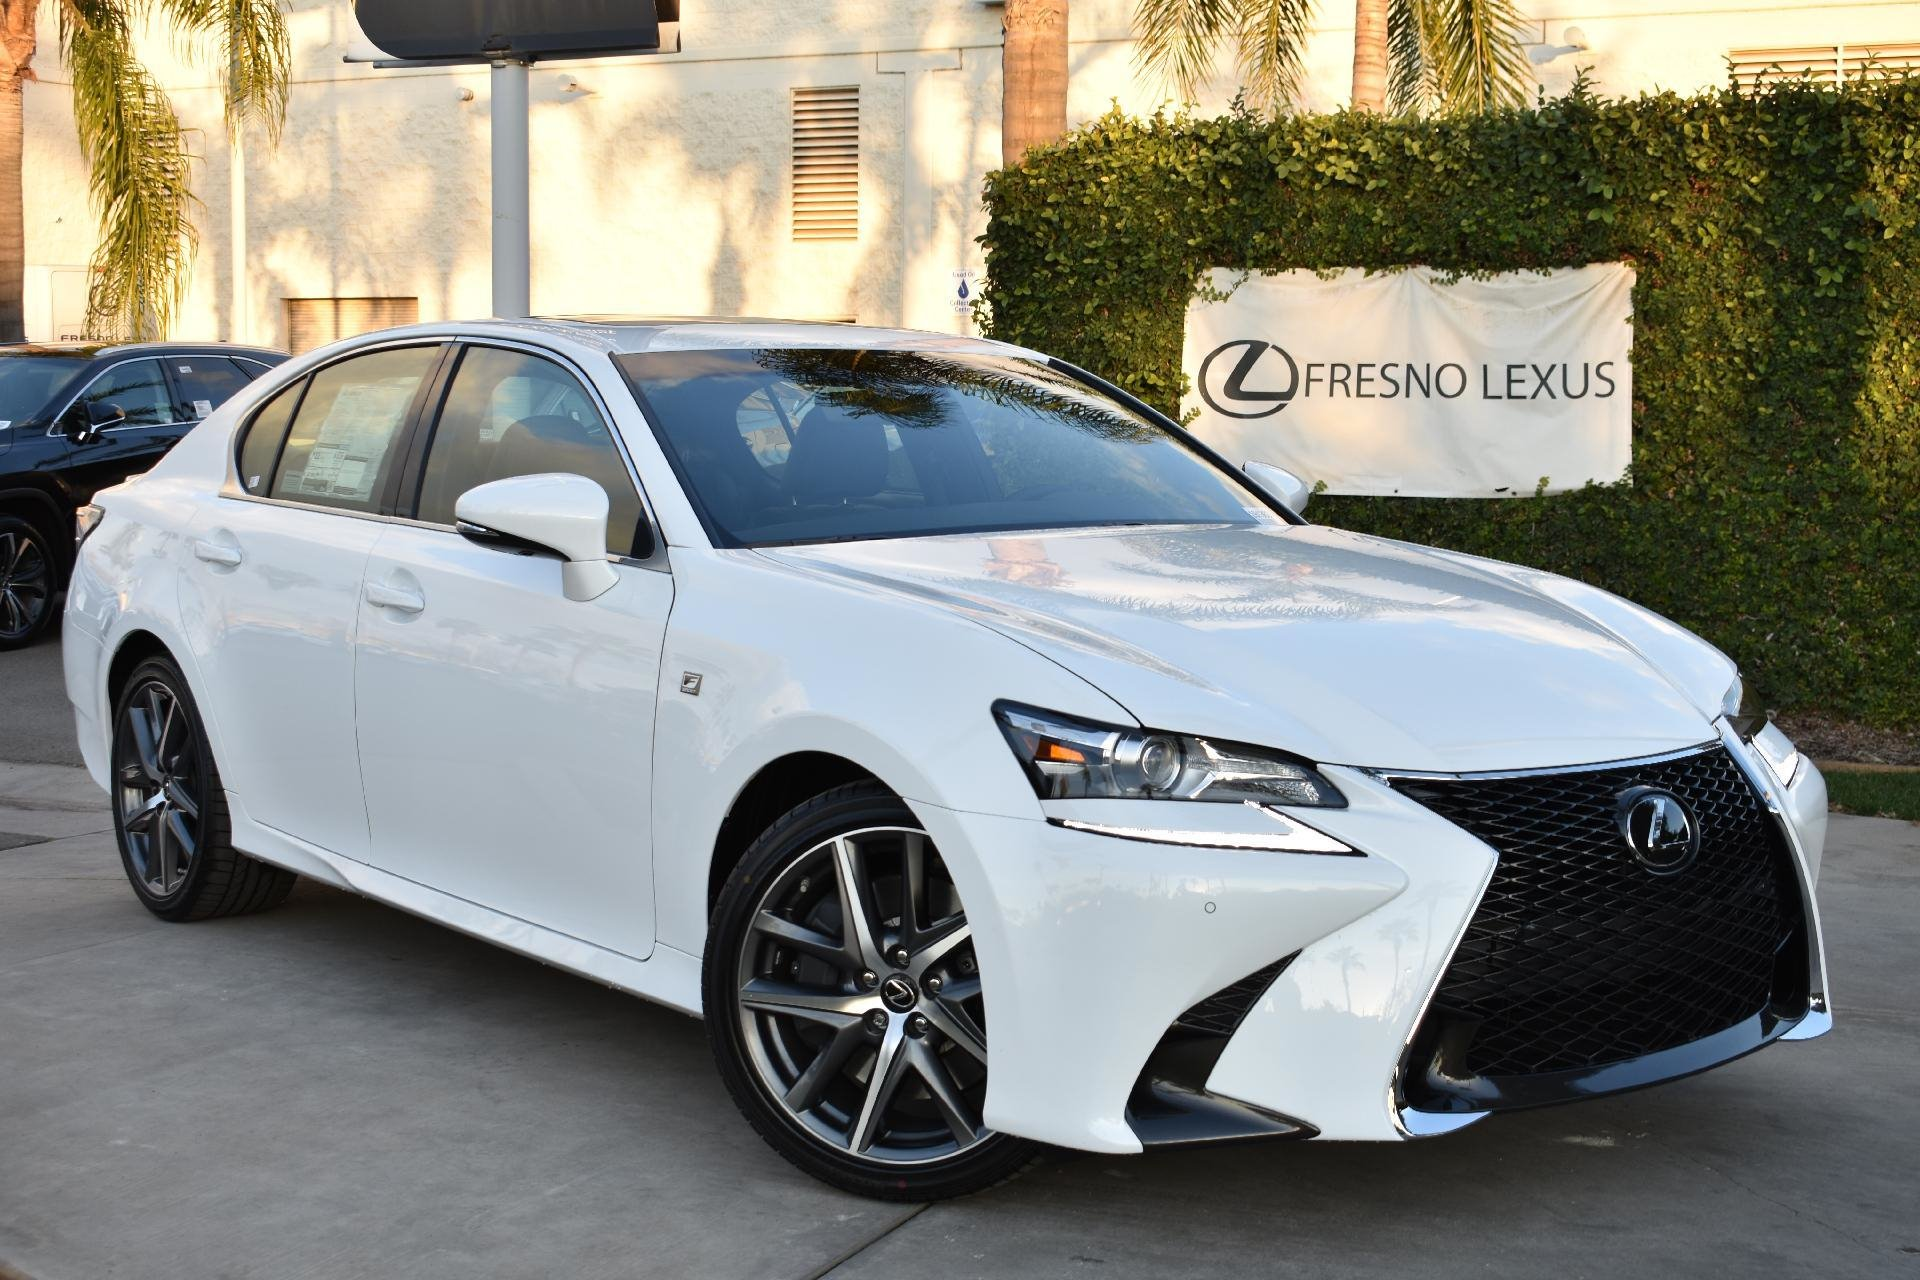 New 2019 Lexus GS 350 F SPORT for sale $54,355 at M and V Leasing in Brooklyn NY 11223 1